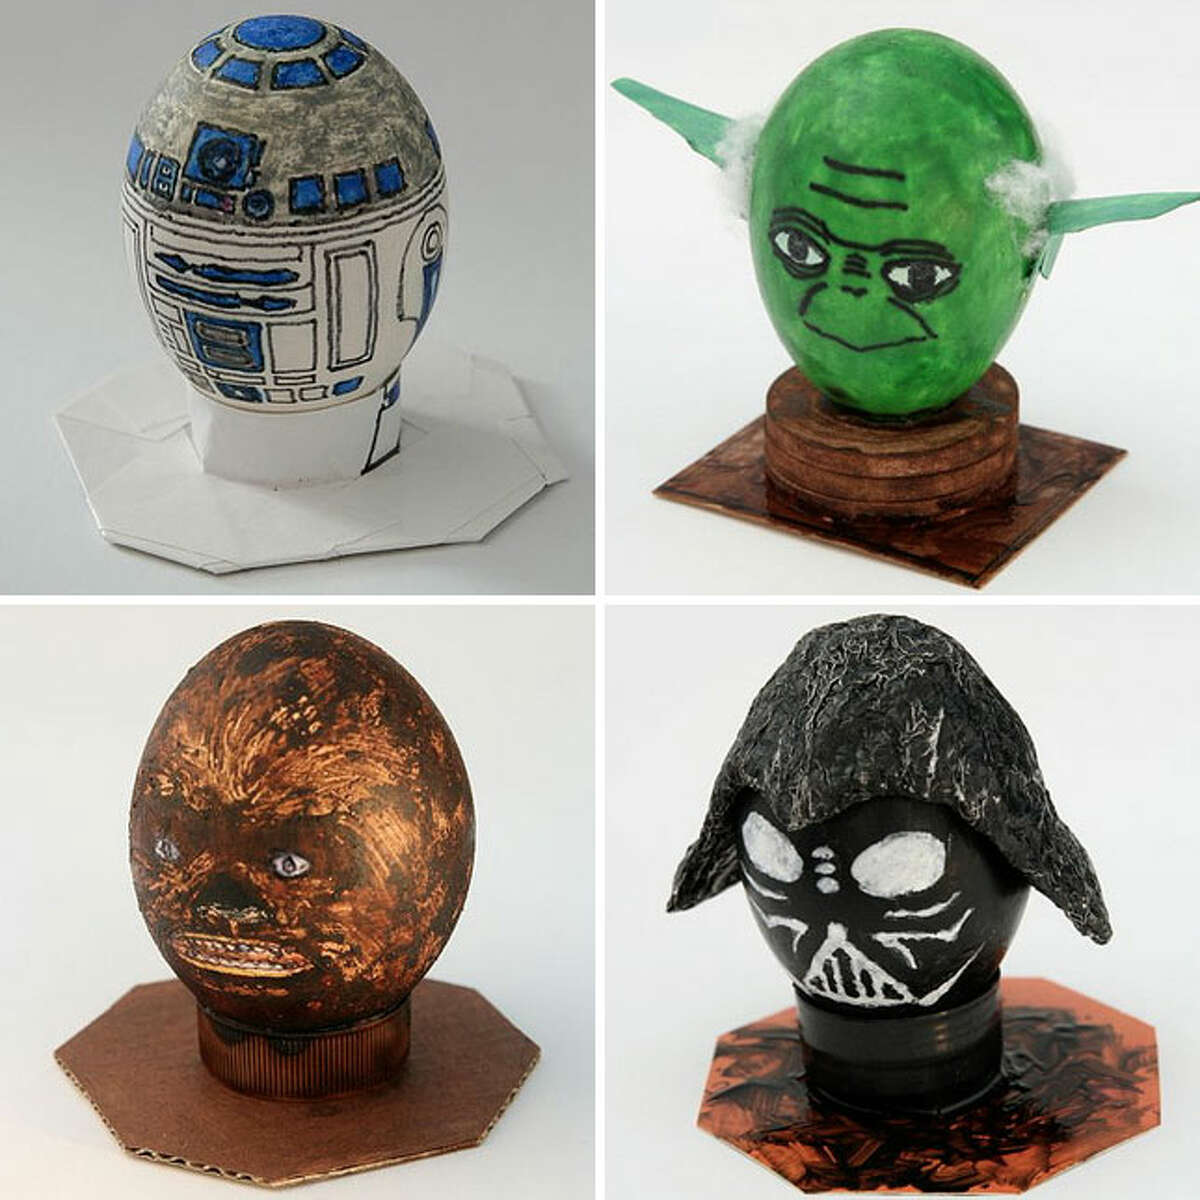 May the force be with you on your hunt. Decorating Easter eggs has been taken to the next level. Just look at these eggs from Smile! Mermaid.